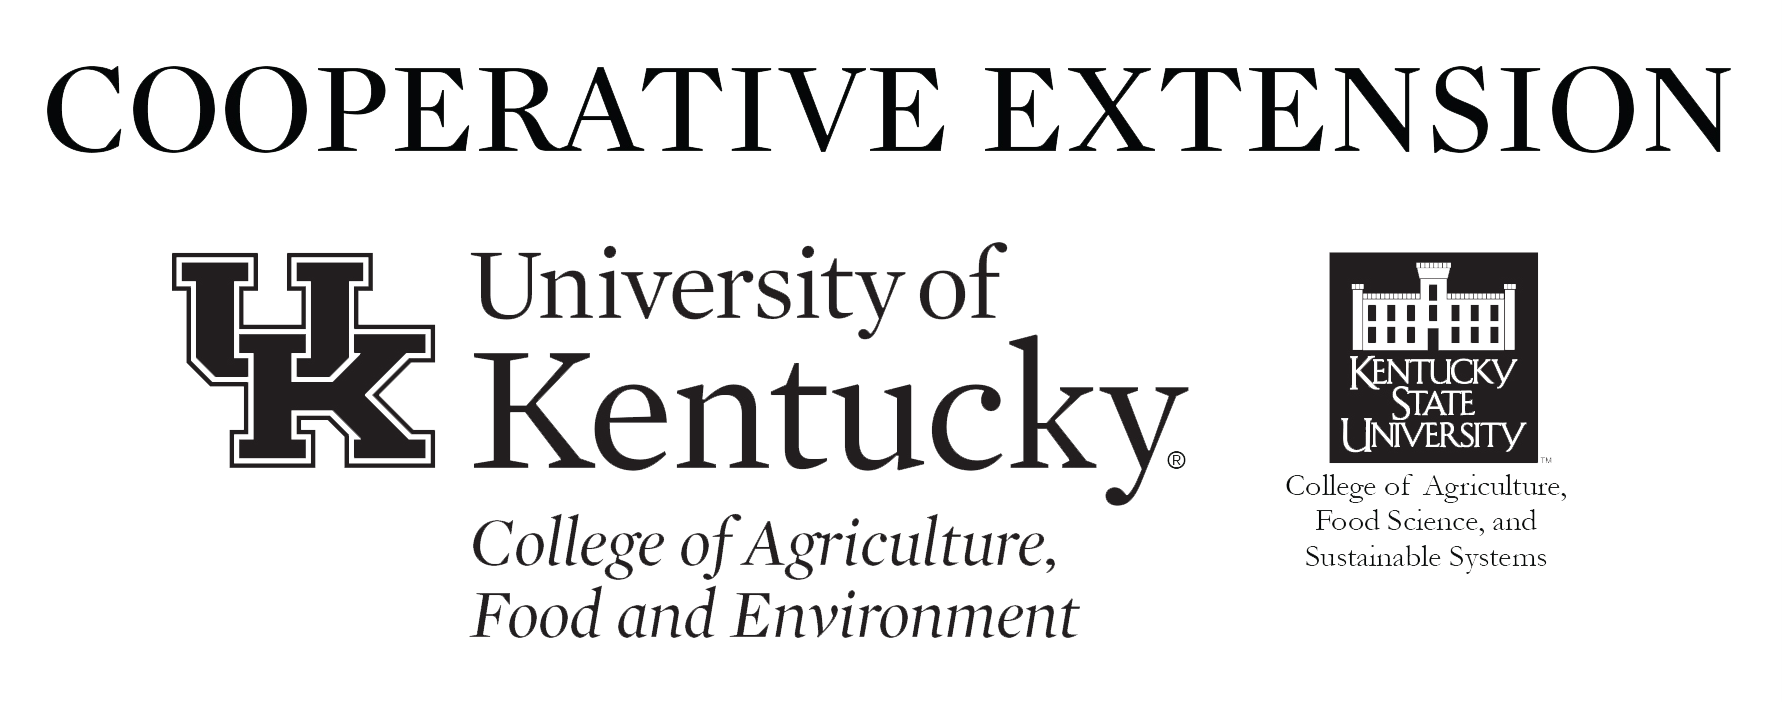 ky extension